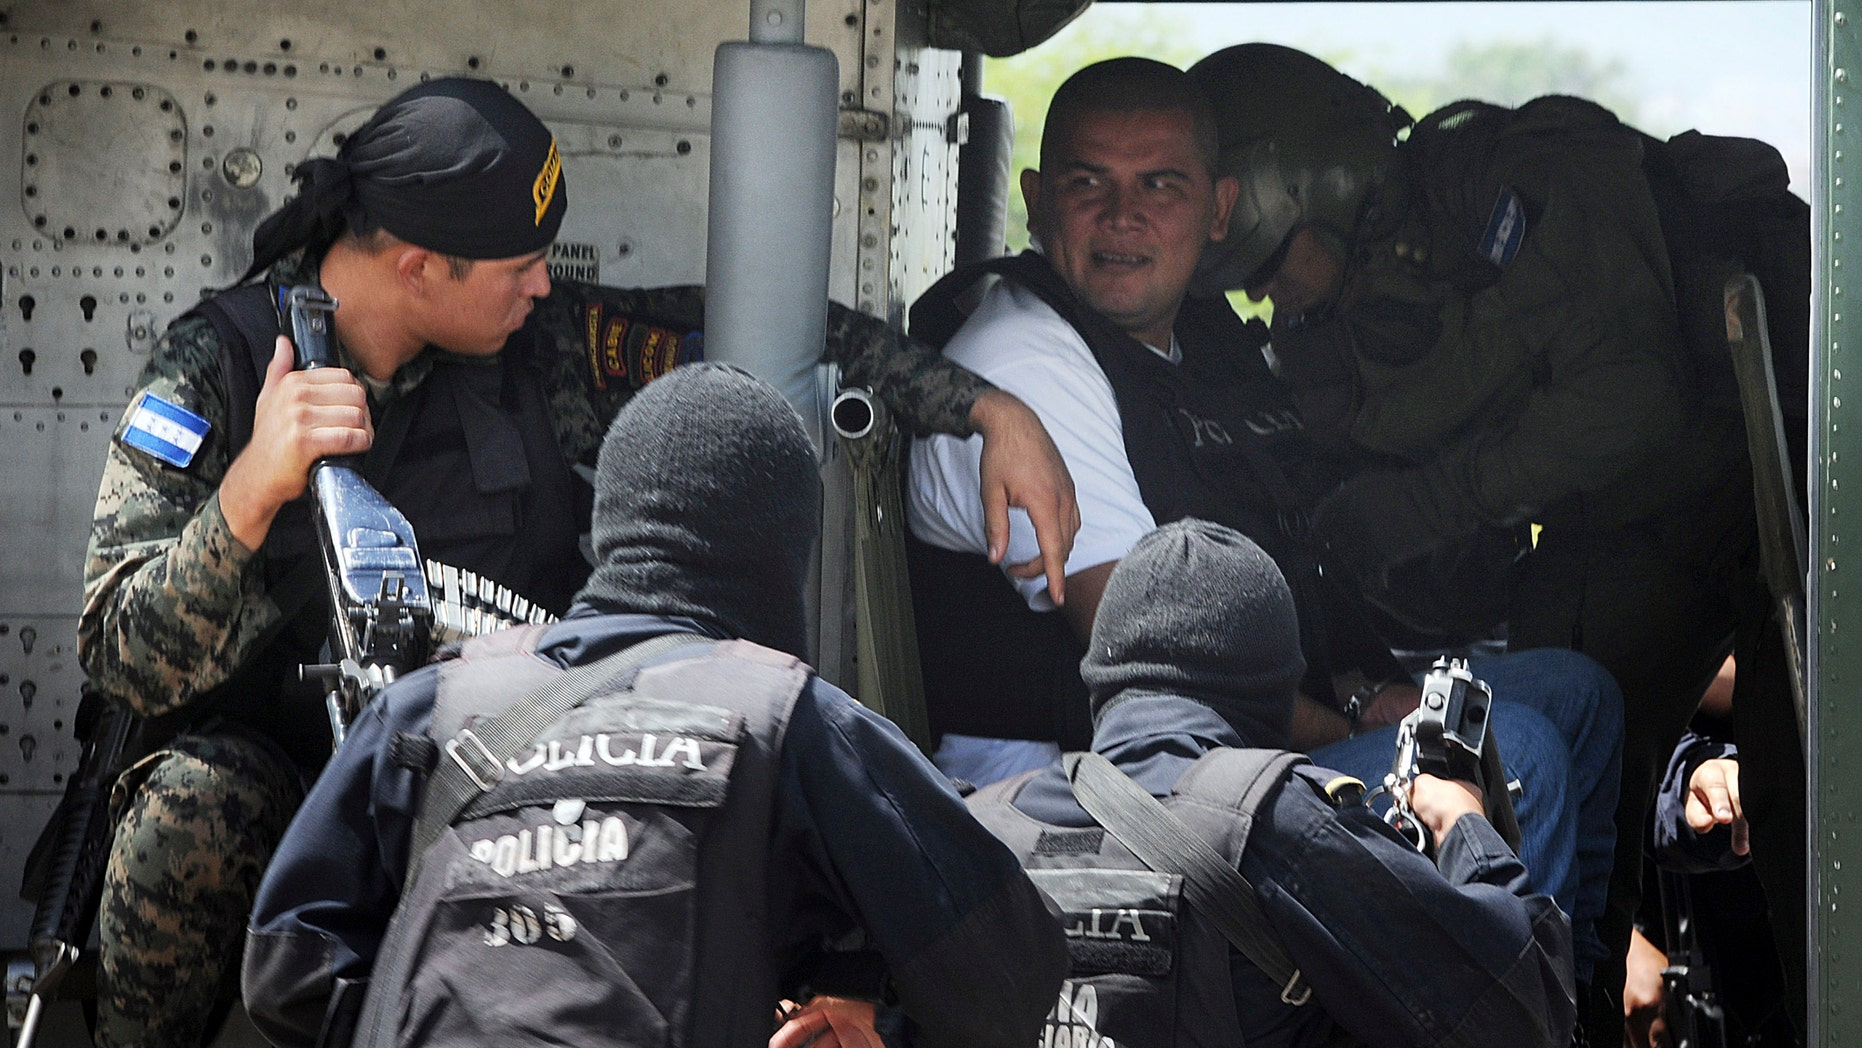 In this Monday, Oct. 10, 2011 photo, alleged drug trafficker Mario Ponce Rodriguez from Guatemala is escorted by police and army personnel during his extradition to the U.S. from Tegucigalpa, Honduras. Honduras has become a main transit route for South American cocaine, a trend that has helped drive the country's homicide rate to the highest level in the world and left many villages dependent on the cocaine trade. (AP Photo/Fernando Antonio)